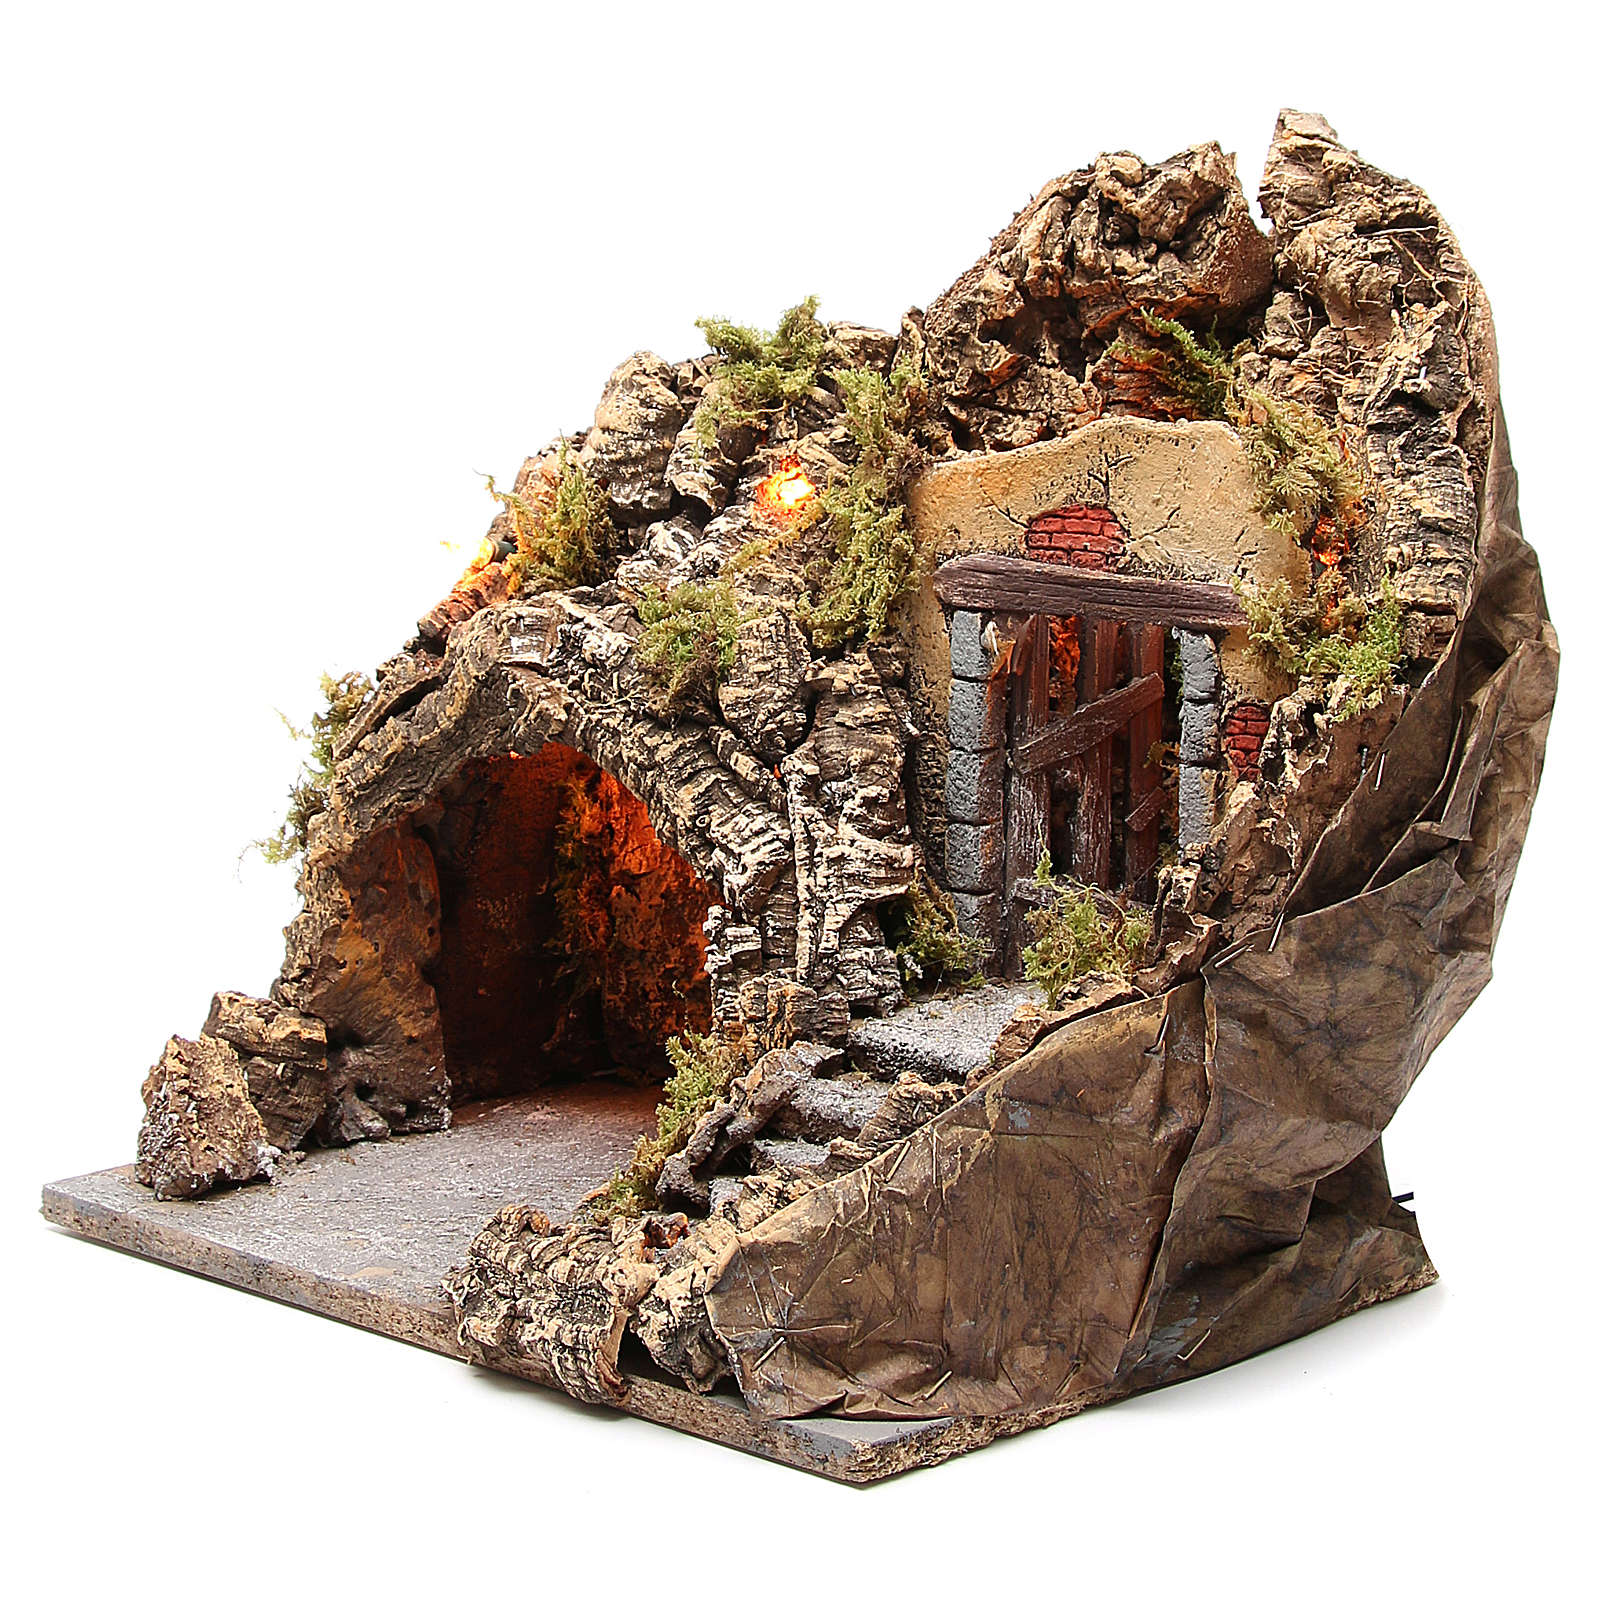 Illuminated grotto for Neapolitan Nativity scene, 38x30x30cm 4